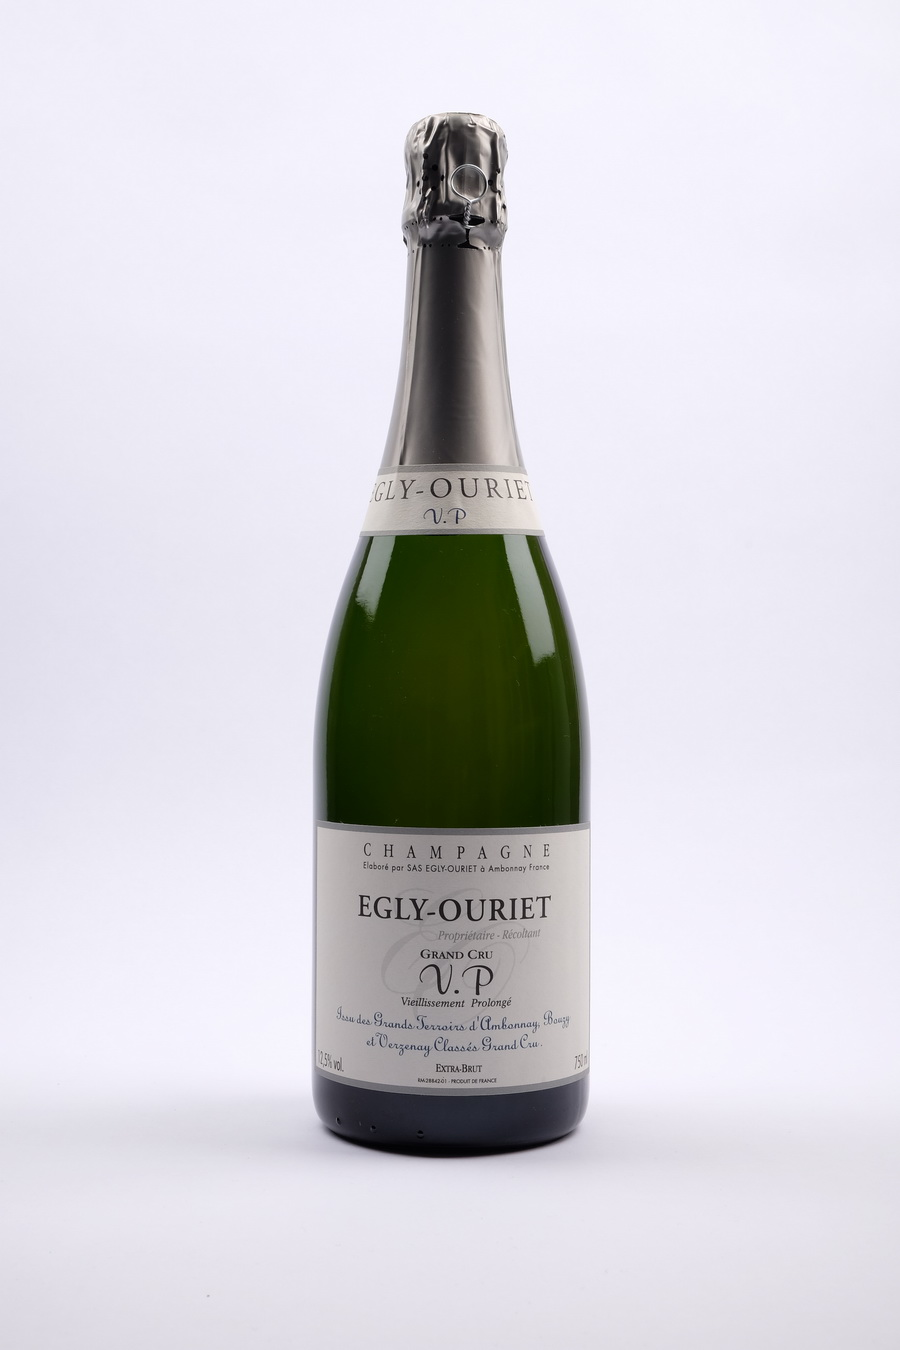 Egly-Ouriet - Champagne Grand Cru V.P. Extra Brut (2011 deg.)